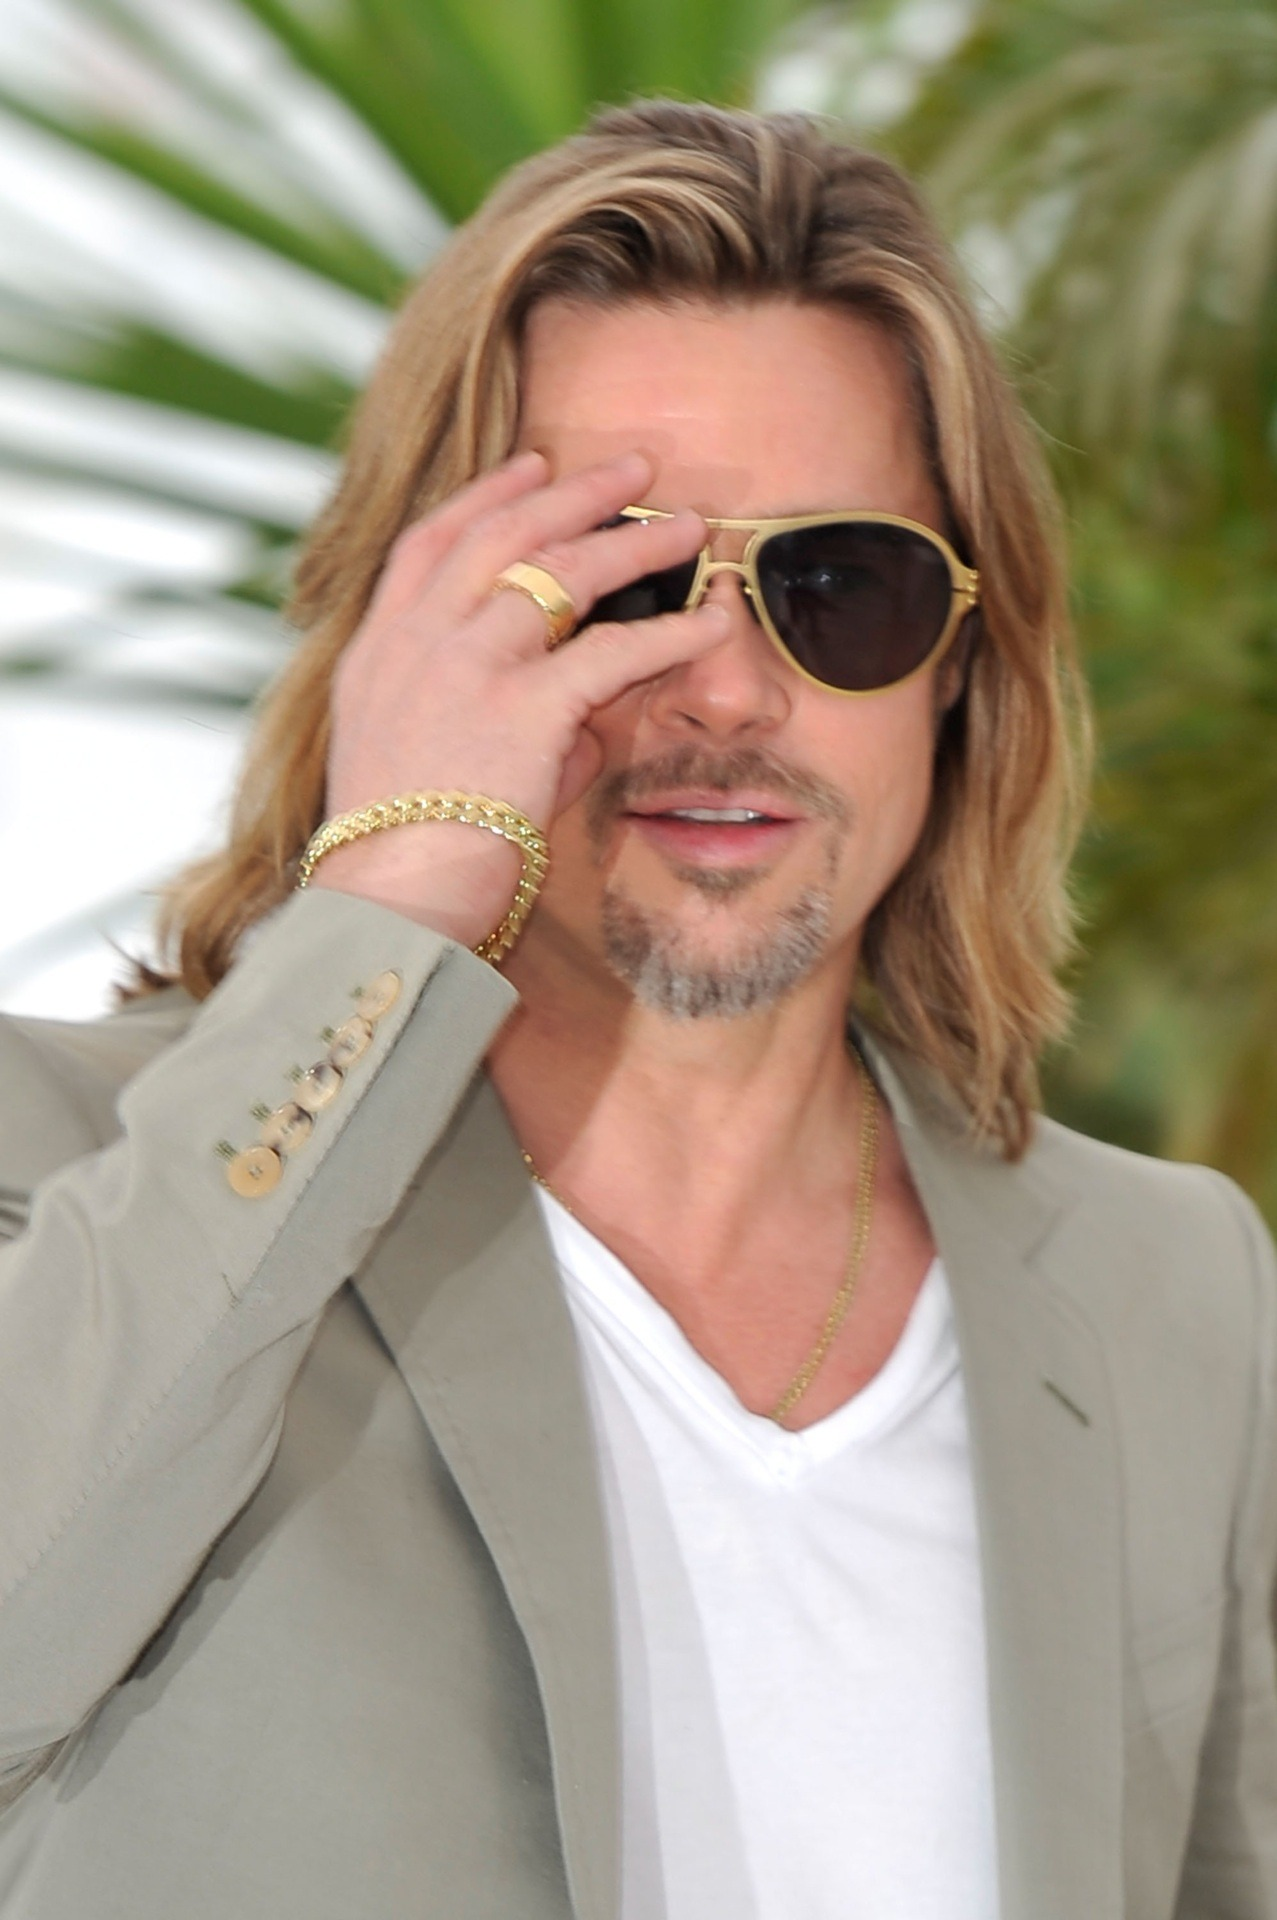 Brad Pitt at the Killing Them Softly photocall at the Cannes Film Festival, May 22nd Hey there pretty pretty